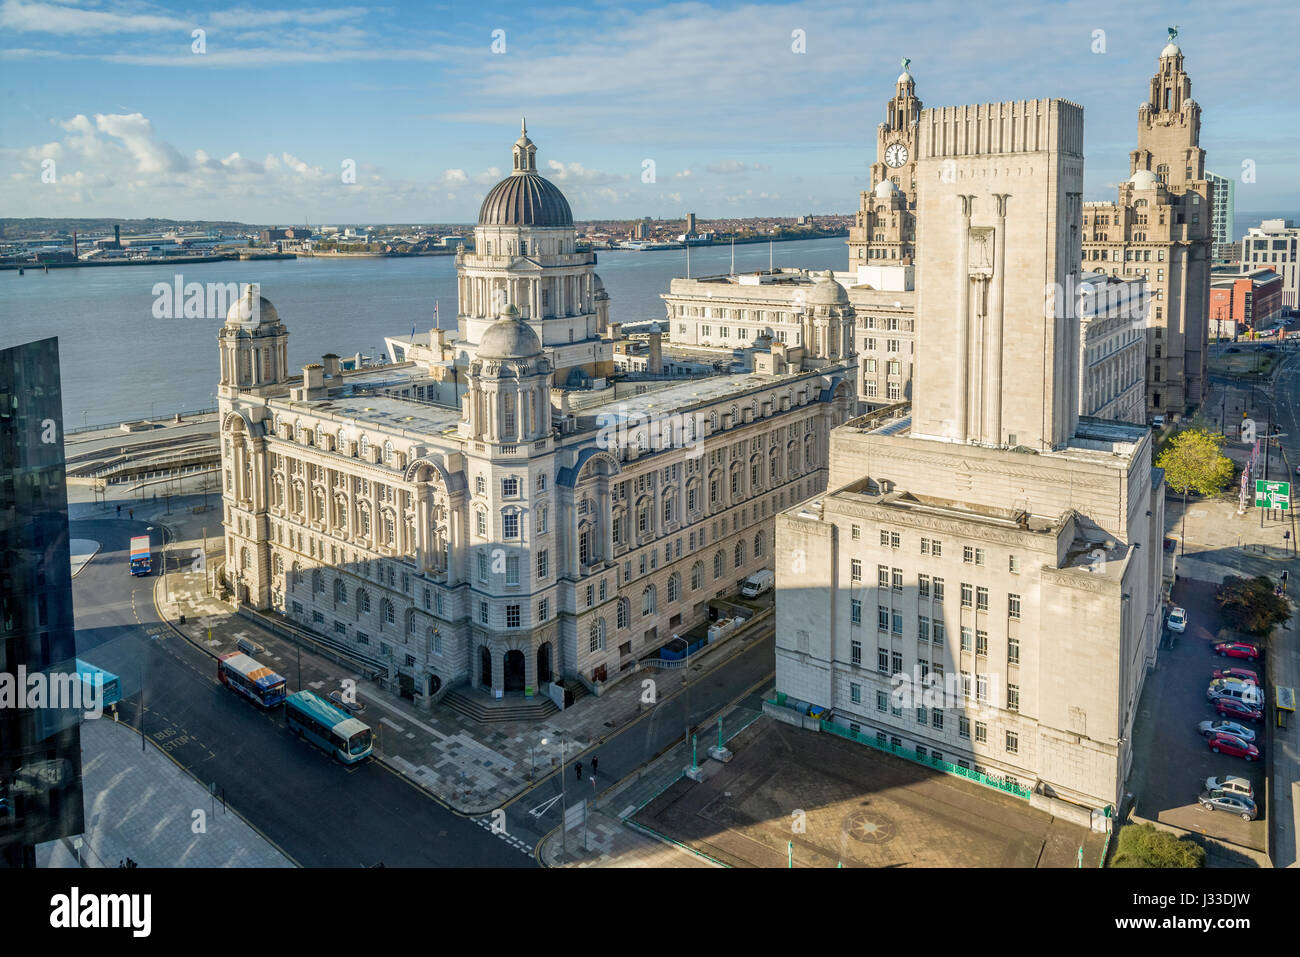 Liverpool waterfront buildings the Three Graces from an unusual angle. - Stock Image